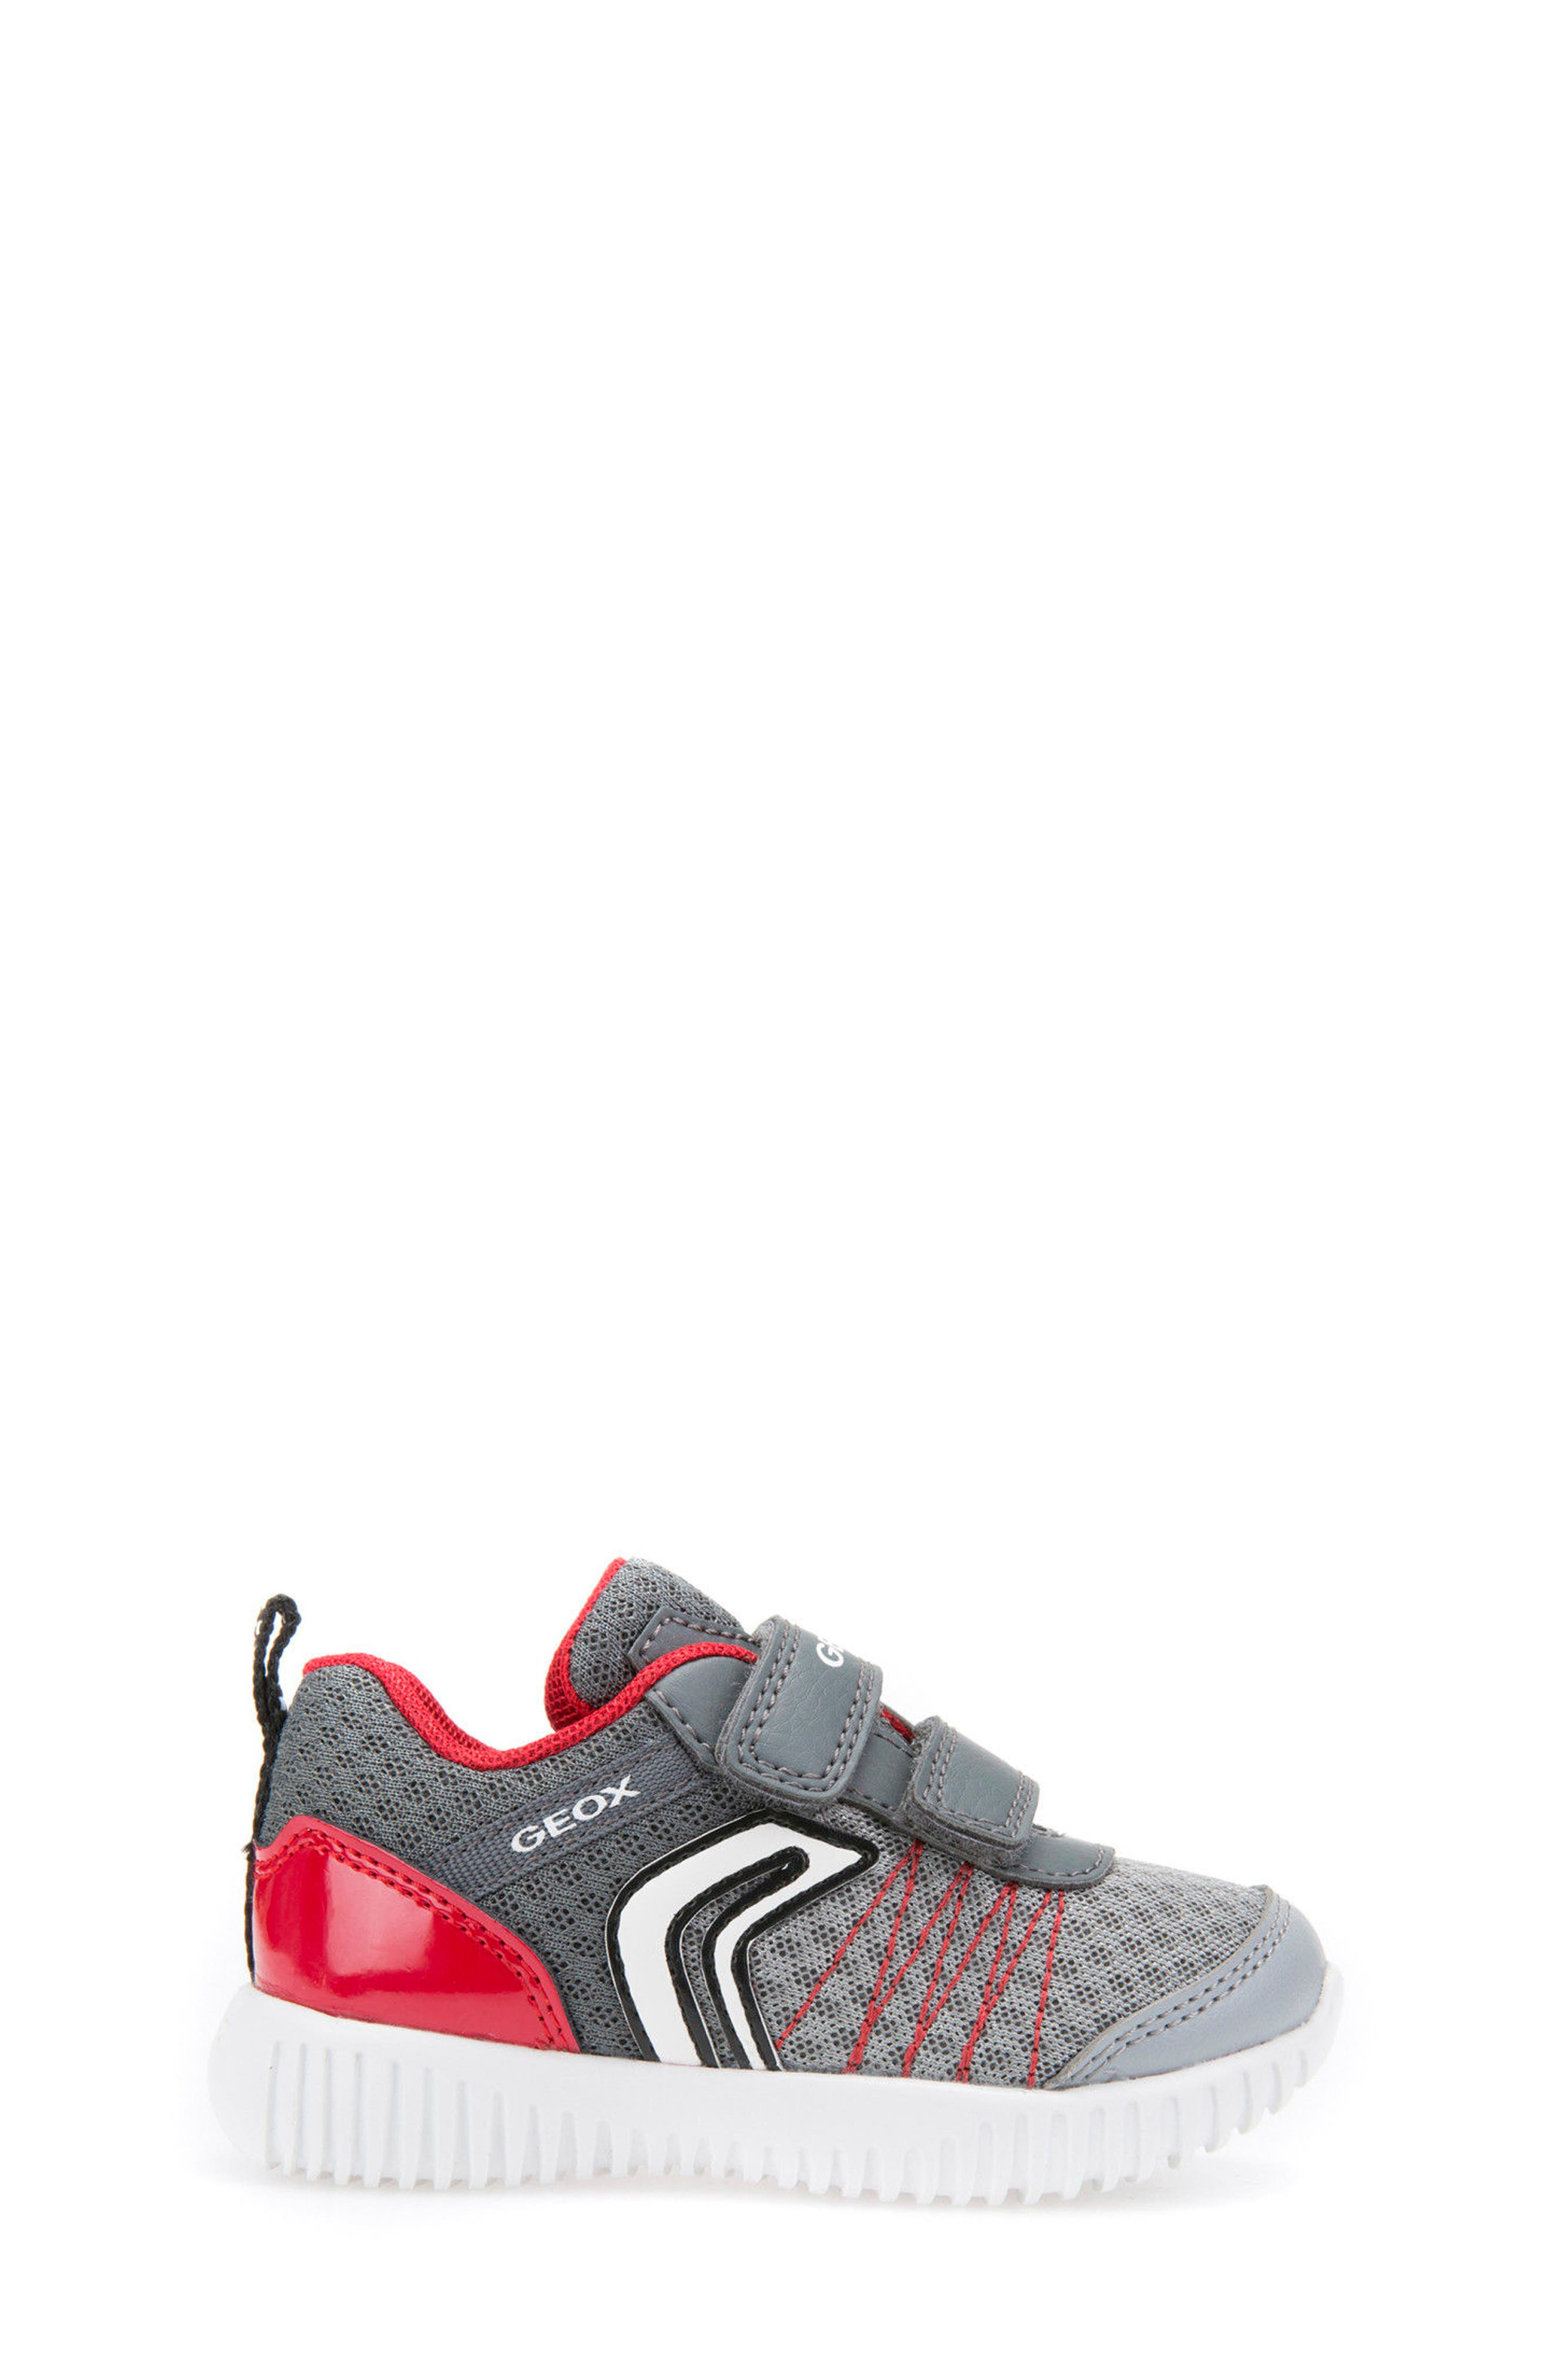 Waviness Sneaker,                             Alternate thumbnail 3, color,                             Grey/ Red